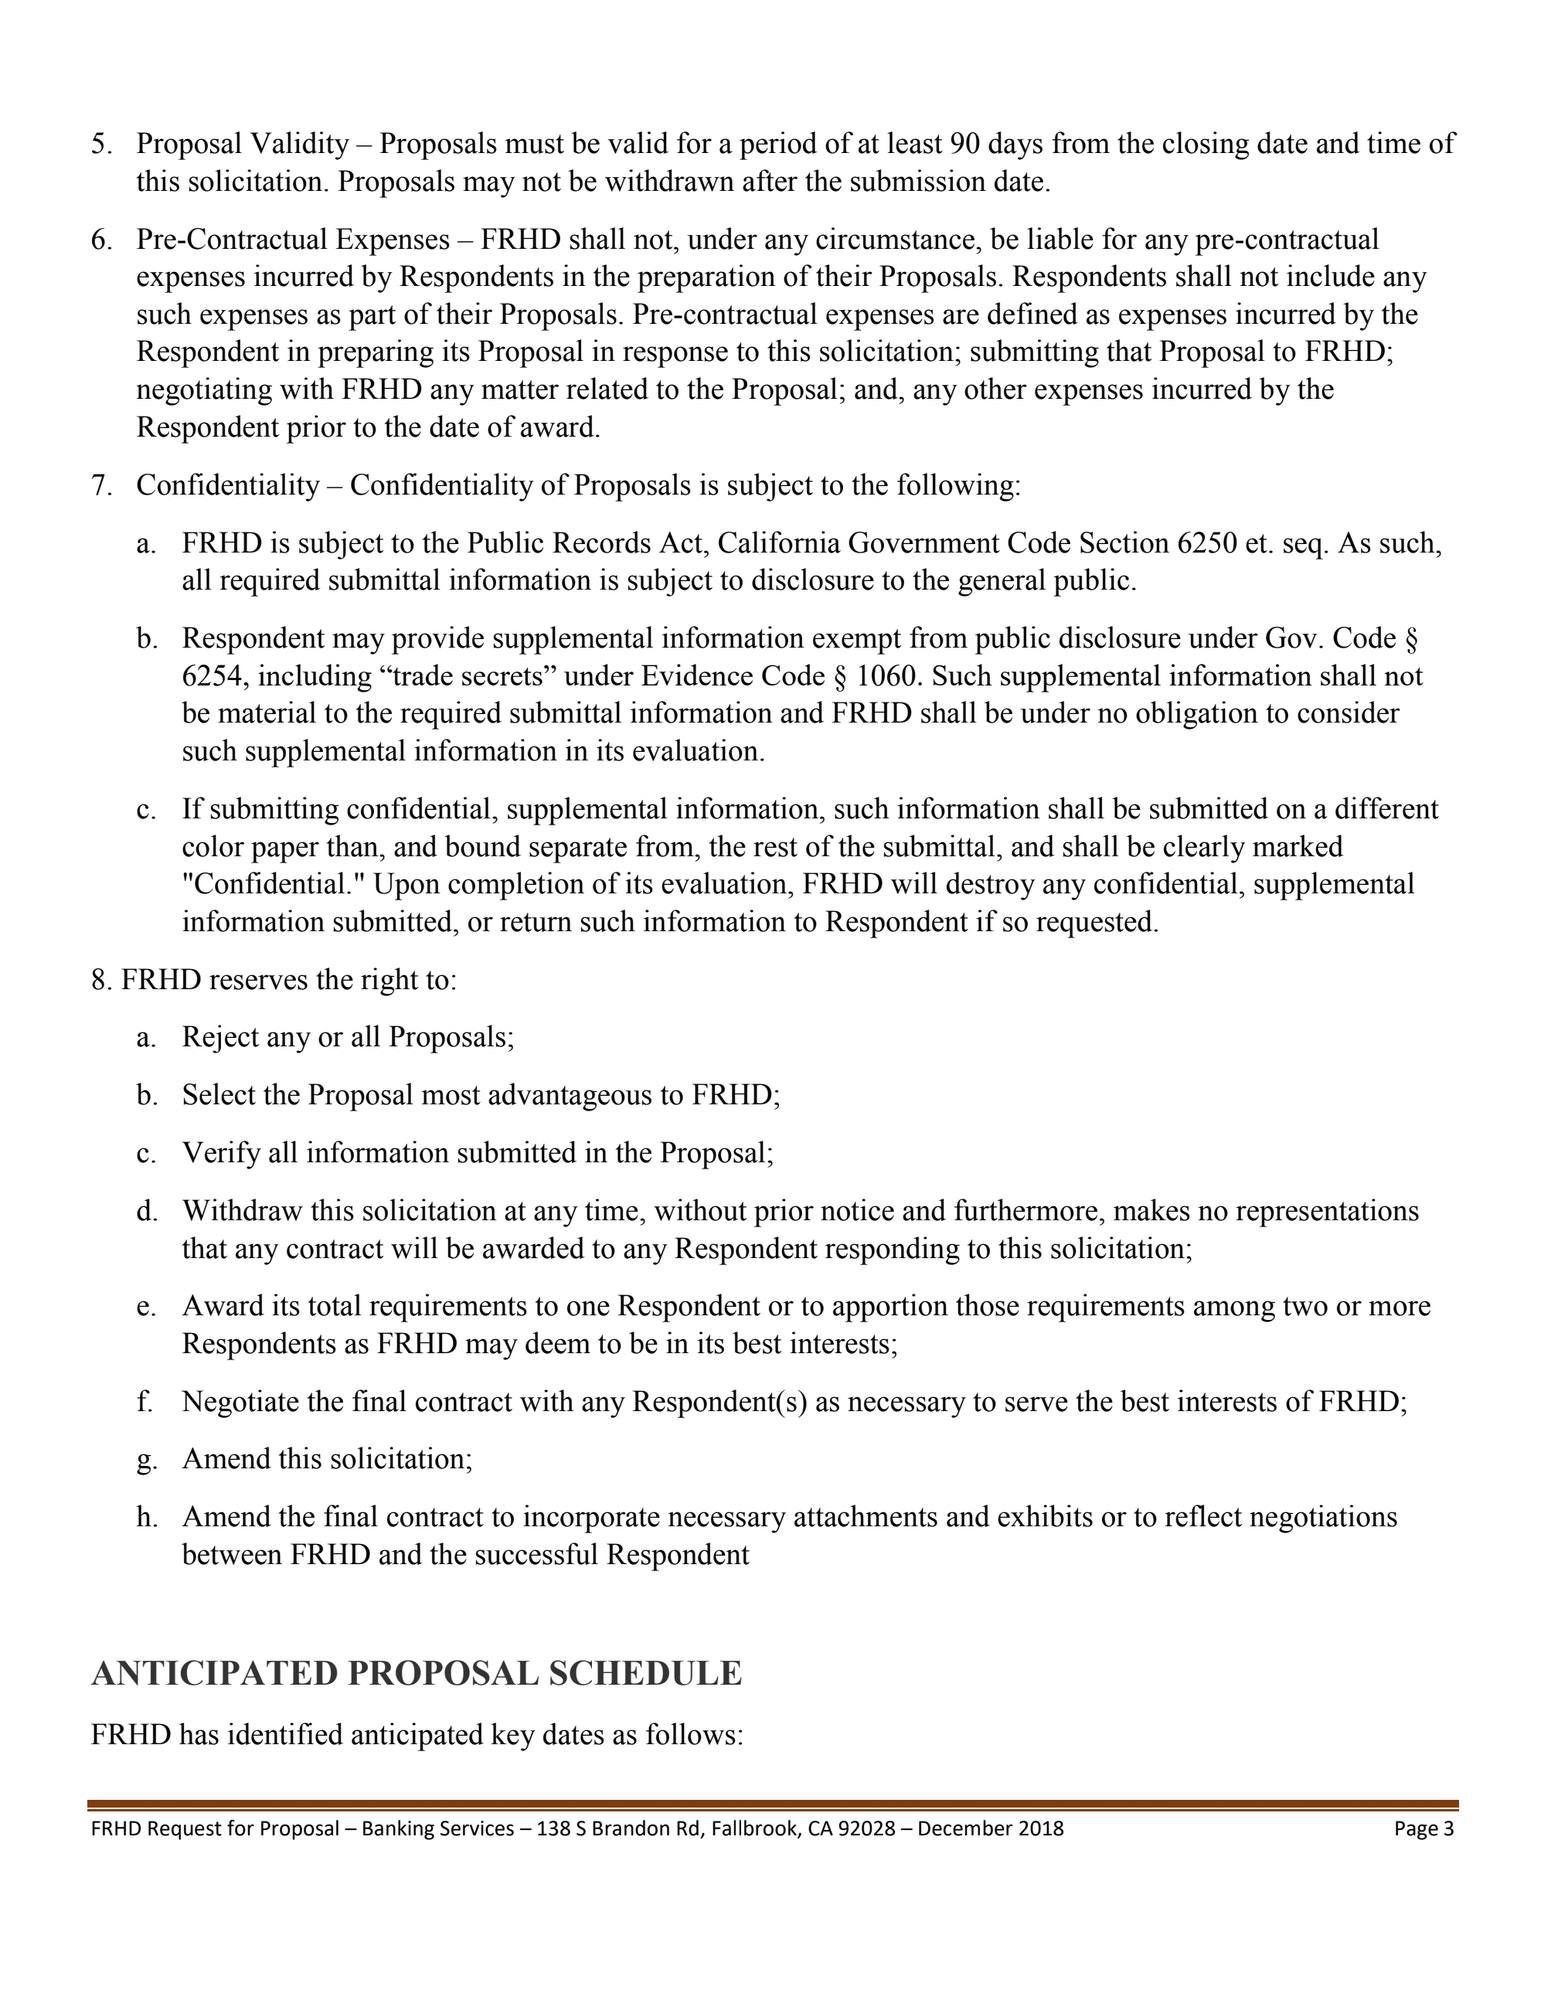 Request for Proposal (RFP) Banking Services - Fallbrook